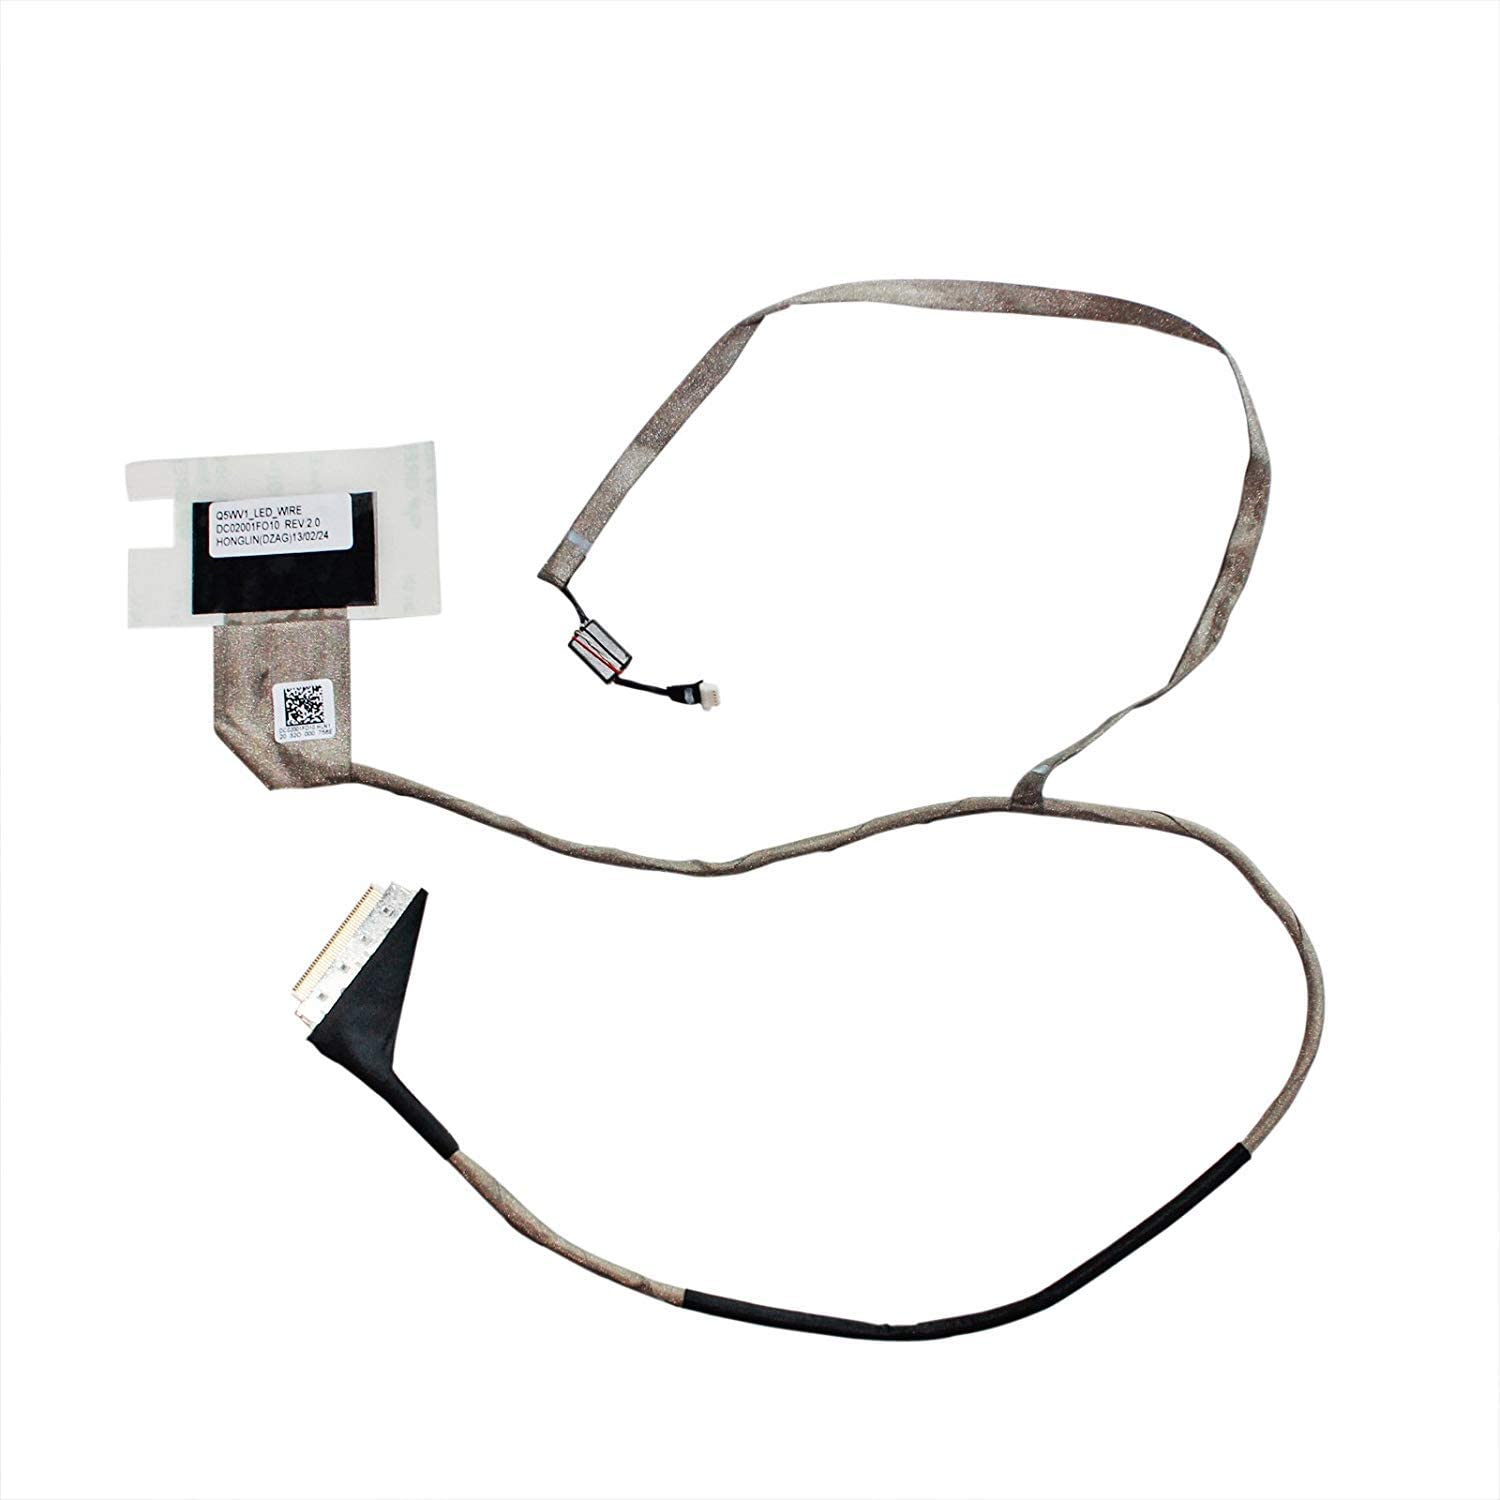 Zahara LCD LED Screen Video Display Cable Replacement for Acer Aspire E1-531-2801 E1-571-6650 E1-521-0851